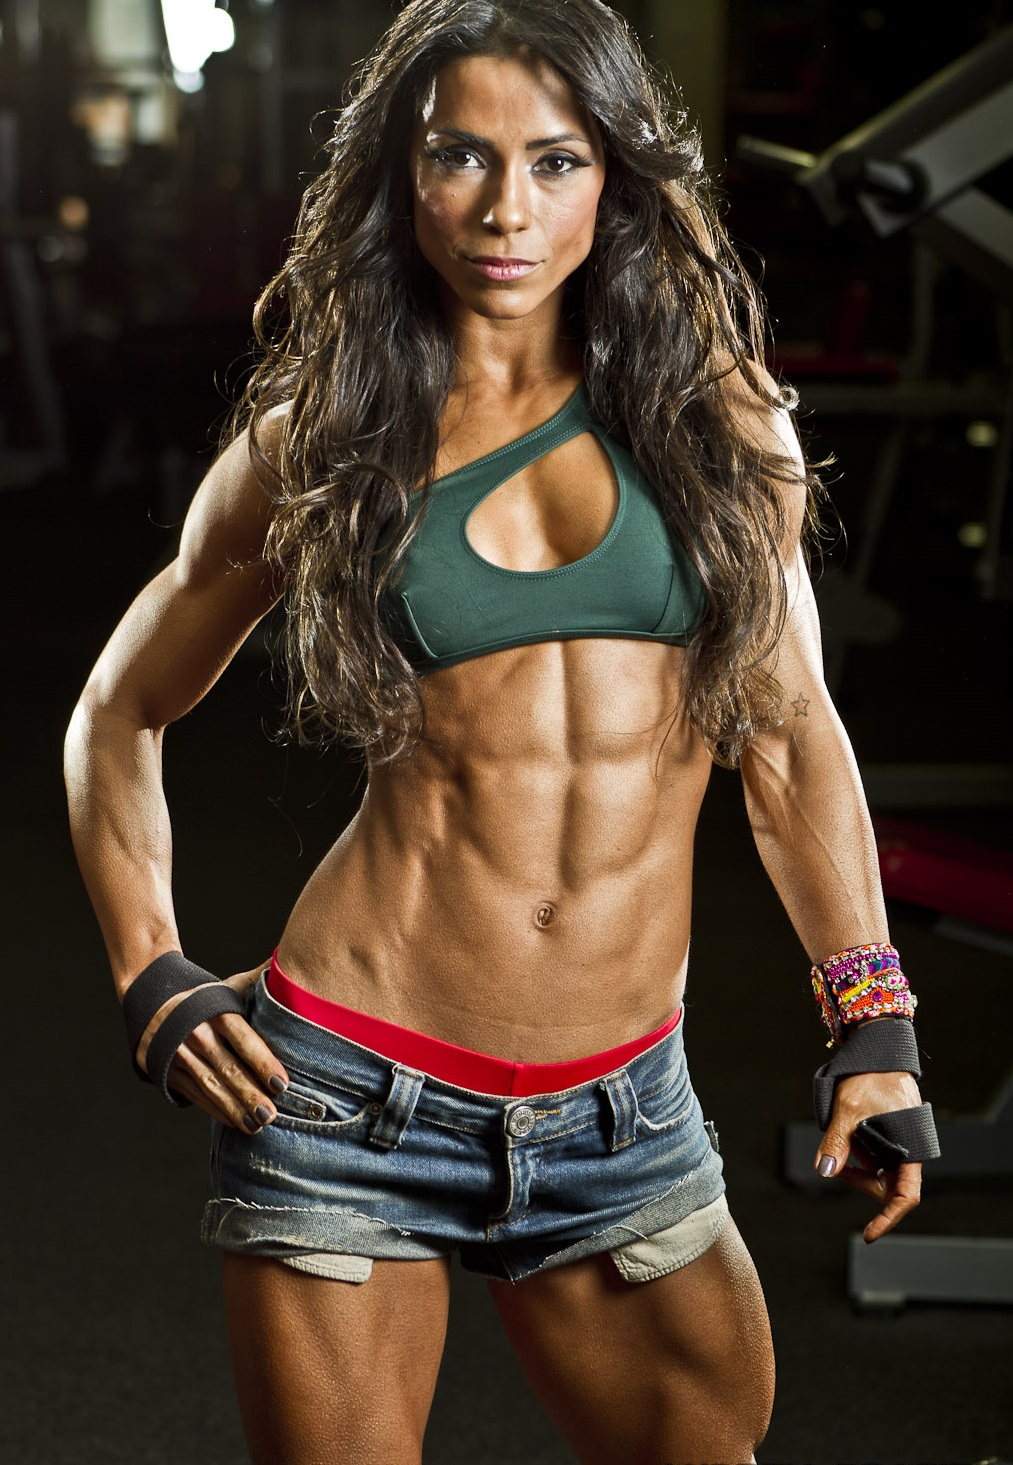 bodybuilder women